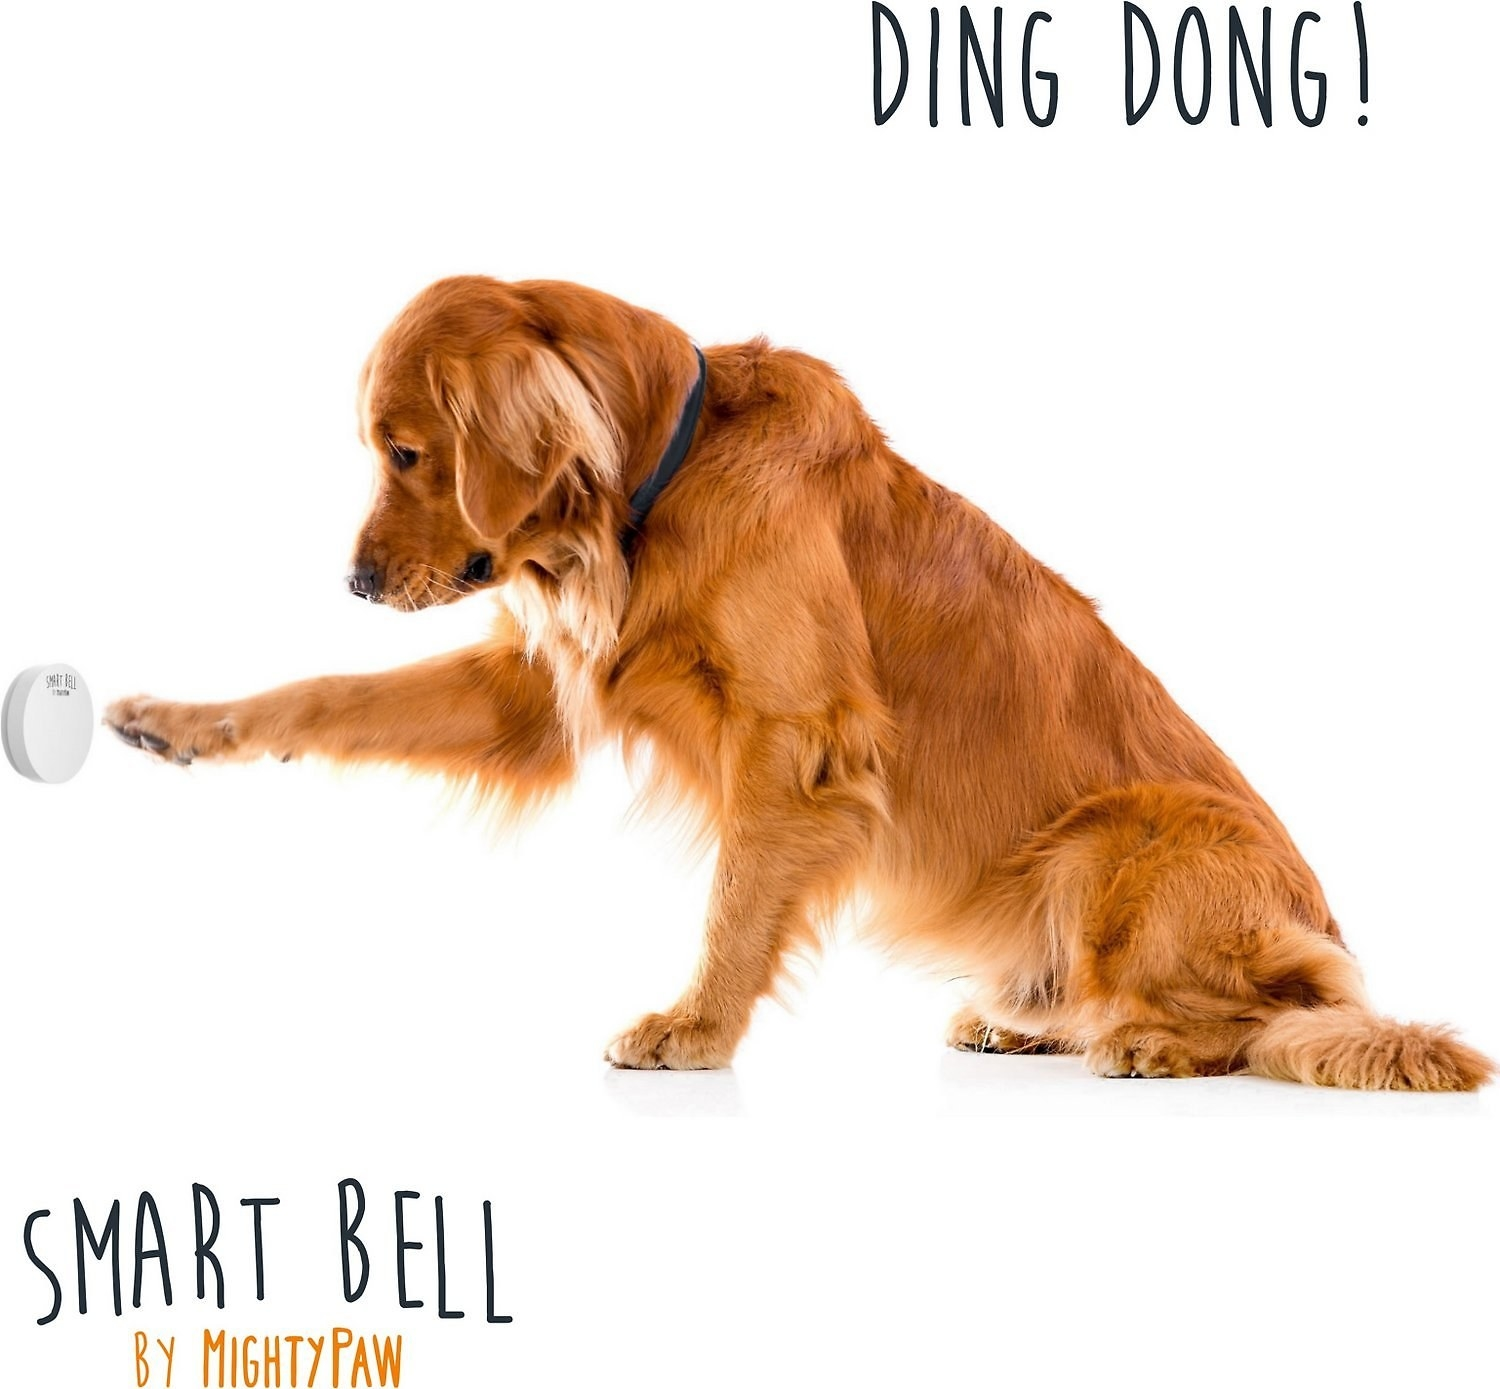 A dog pressing the doorbell with their paw